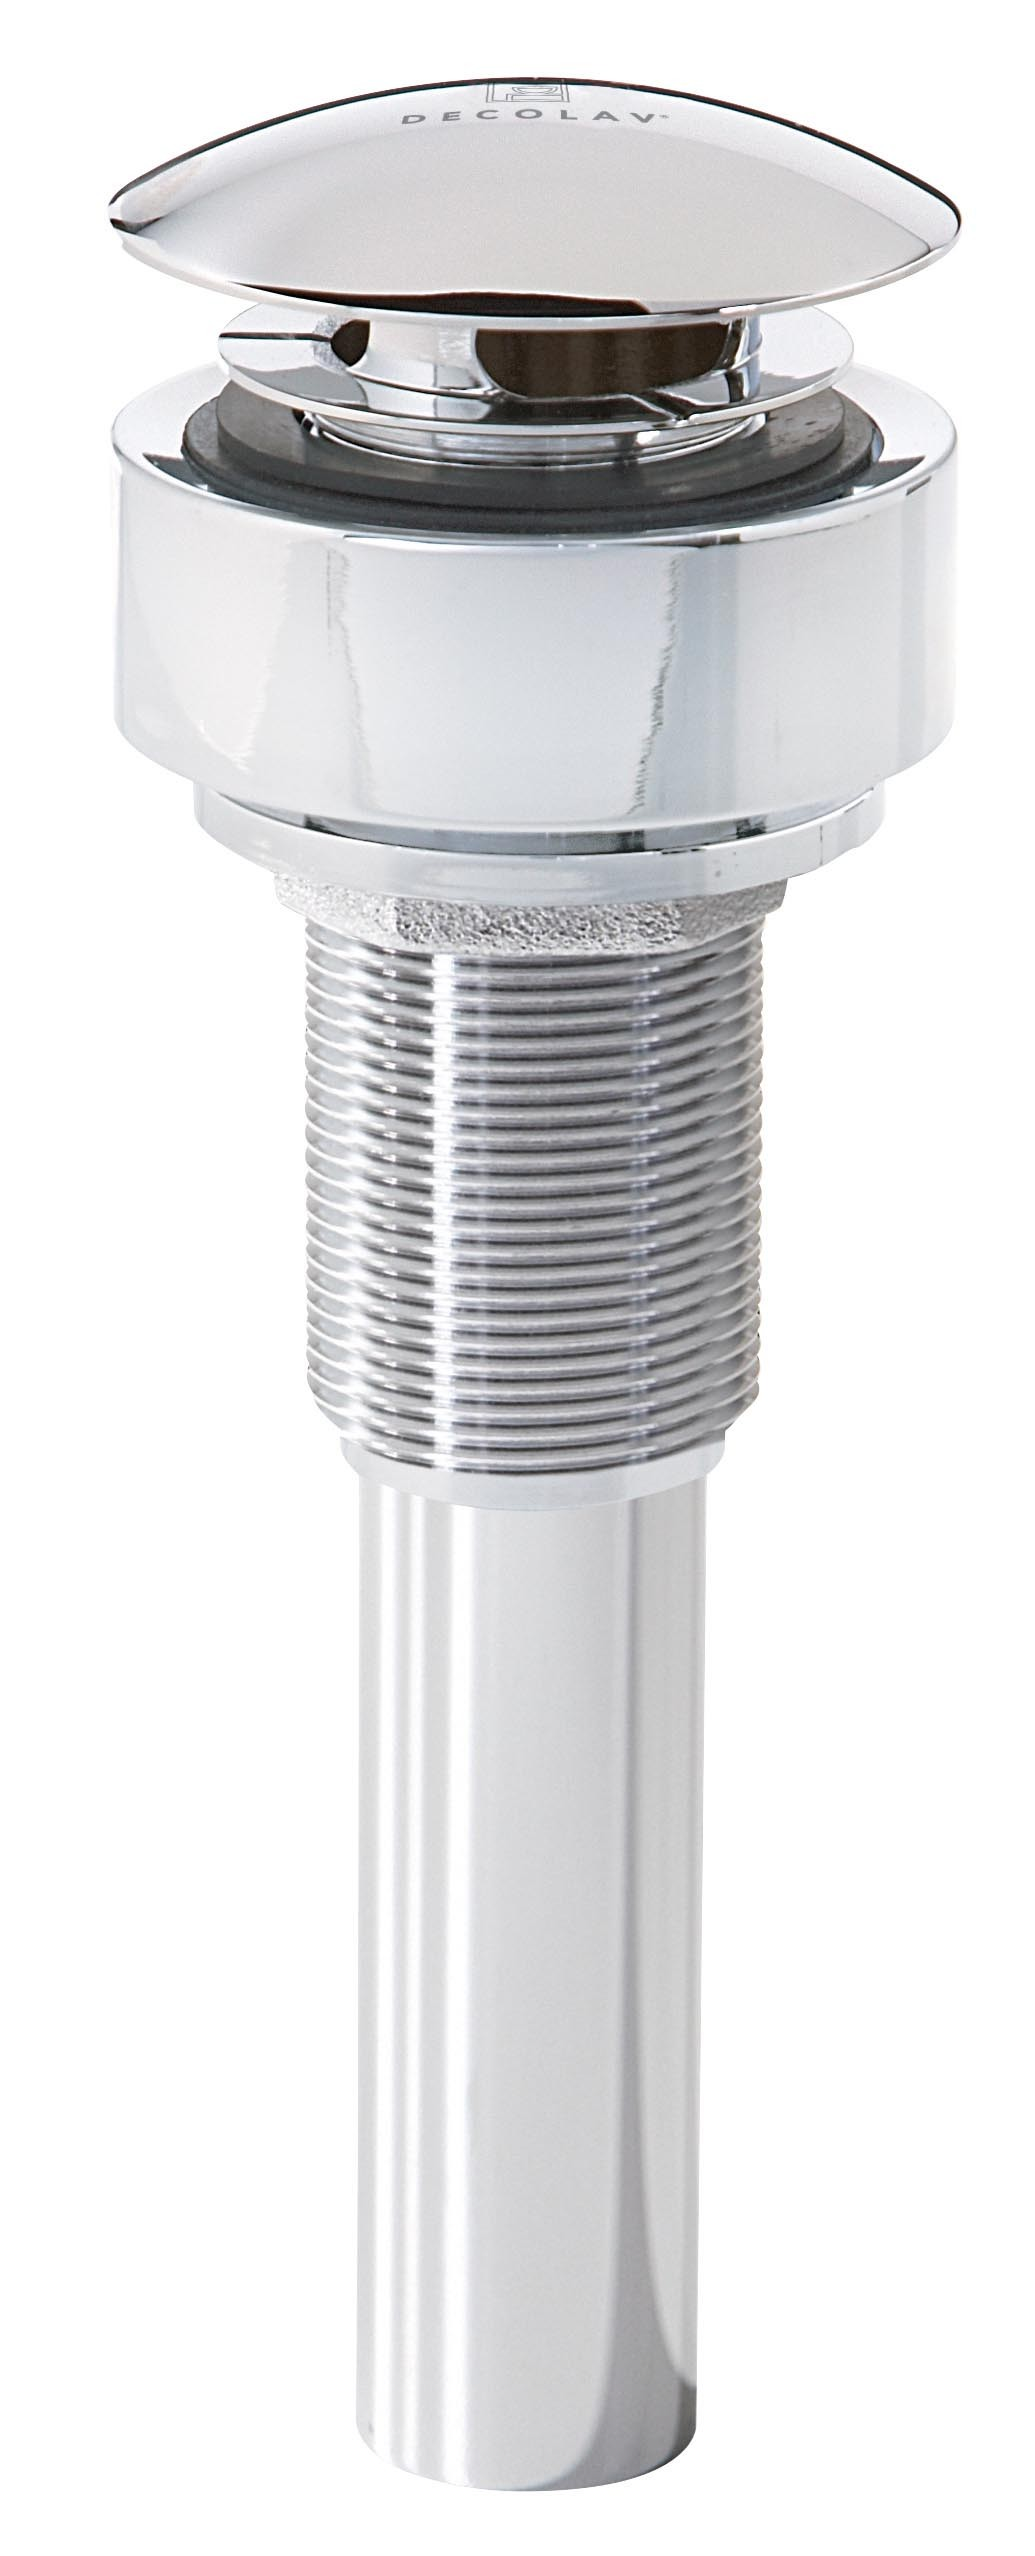 Decorative Umbrella Top Drain with Integrated Mounting Ring